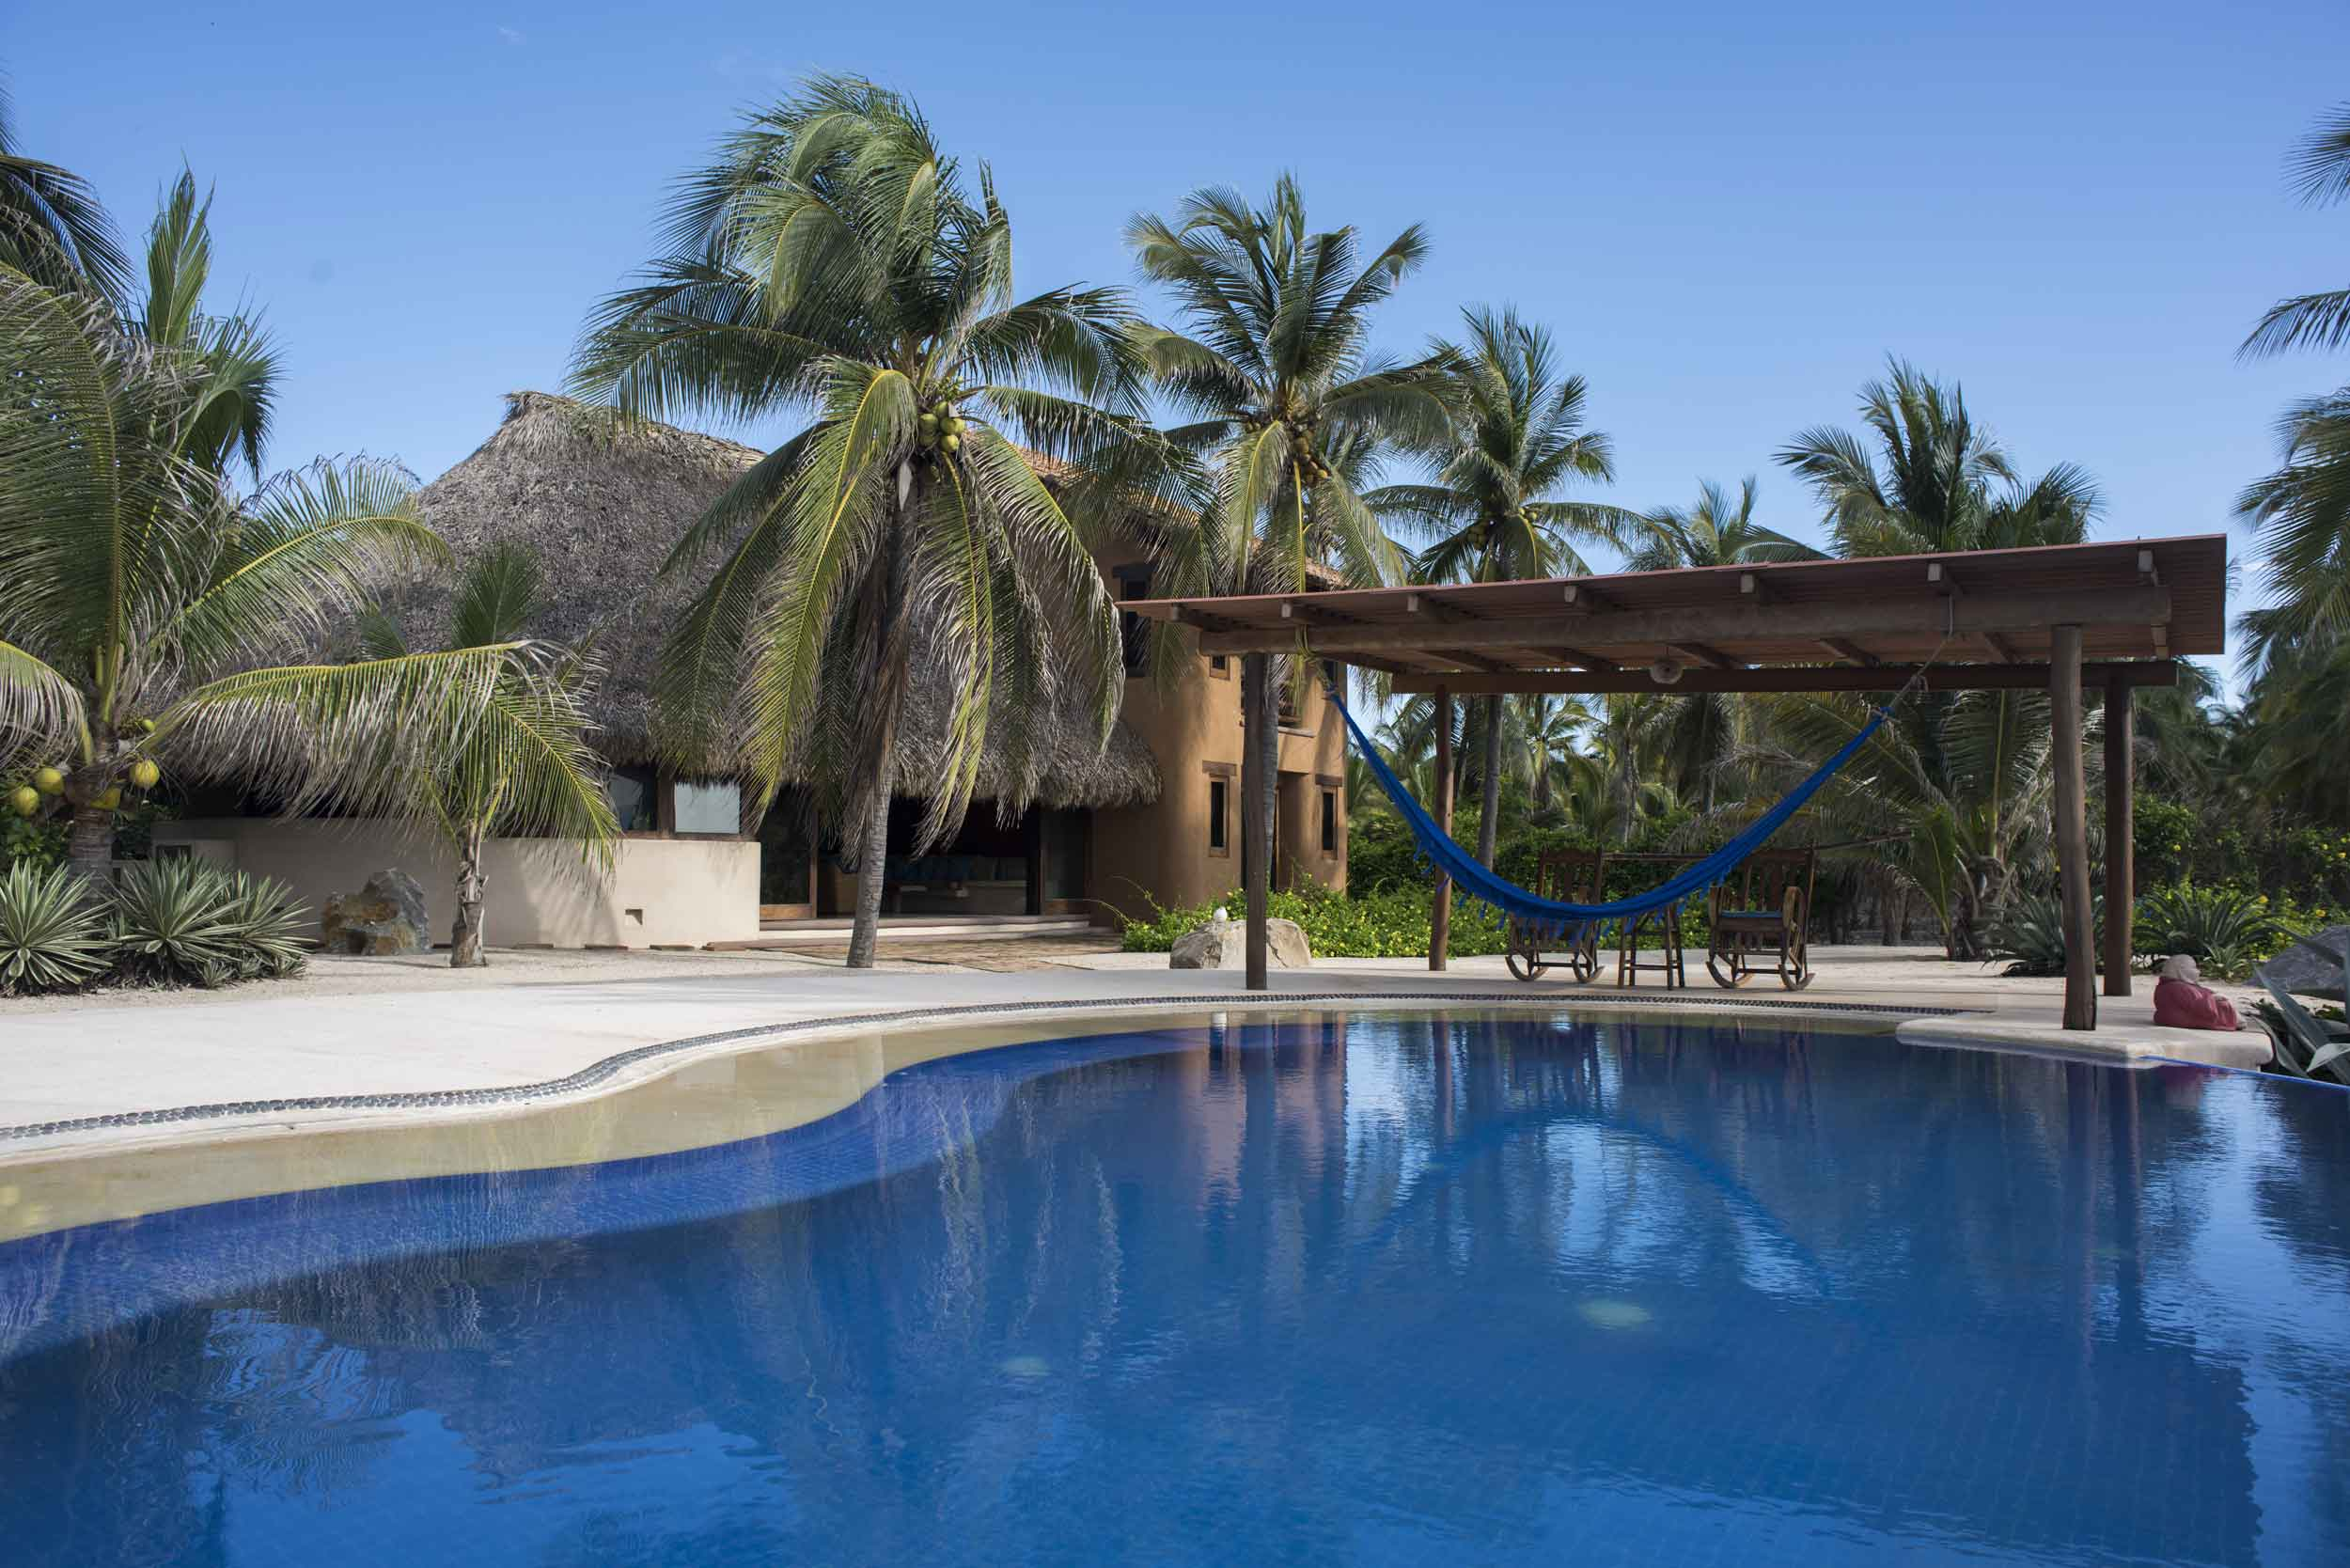 A study in blue: Pool, surf and mountains majesty. Nestle into one of this estate's hammocks and enjoy.